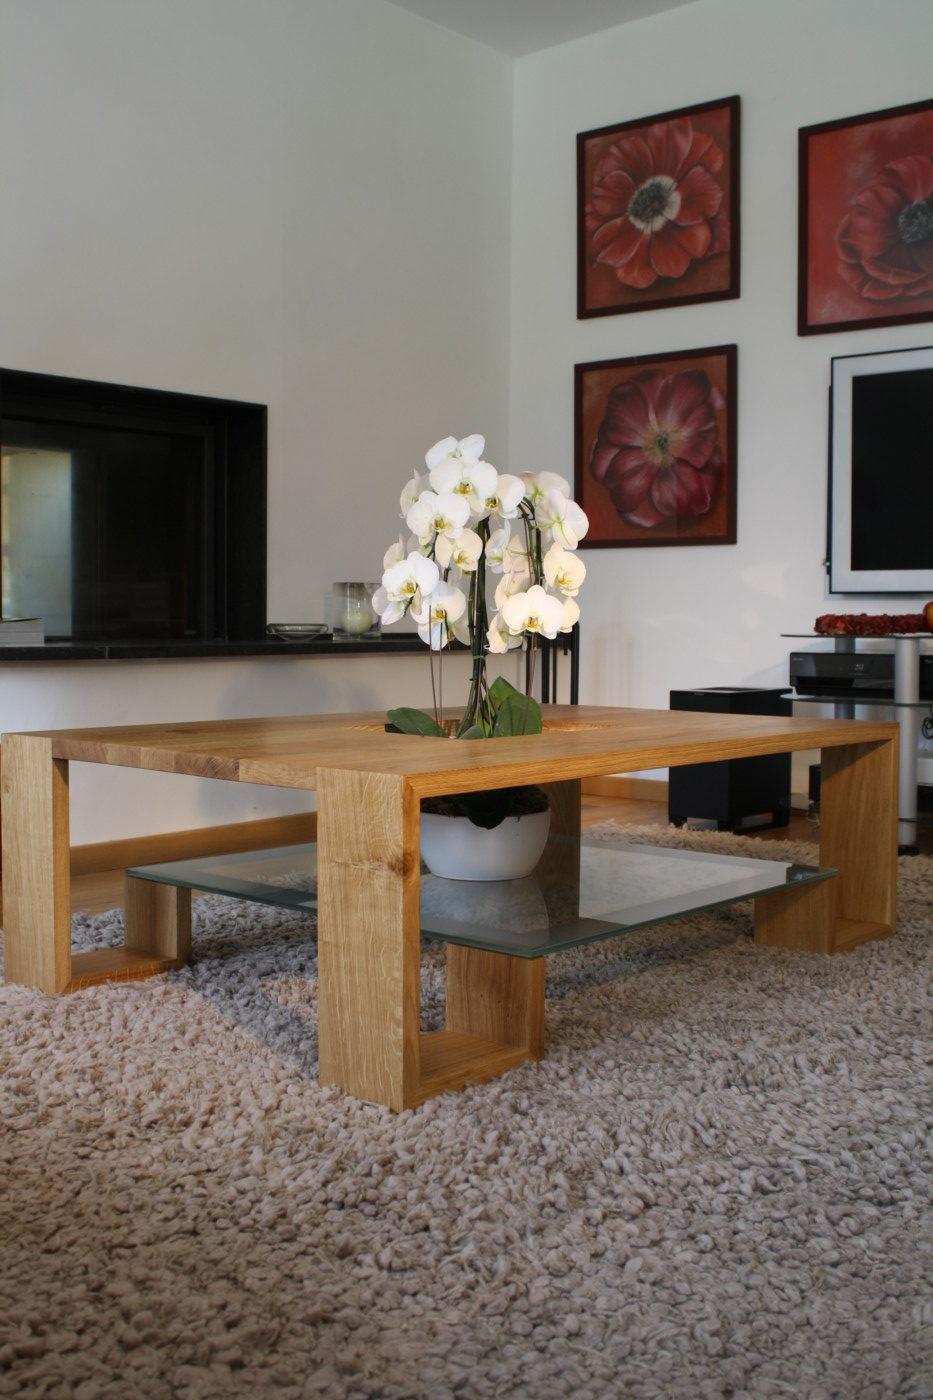 Tables Design Basses Tables Mt De De Mt Basses Design Basses Tables De SpMVqUz